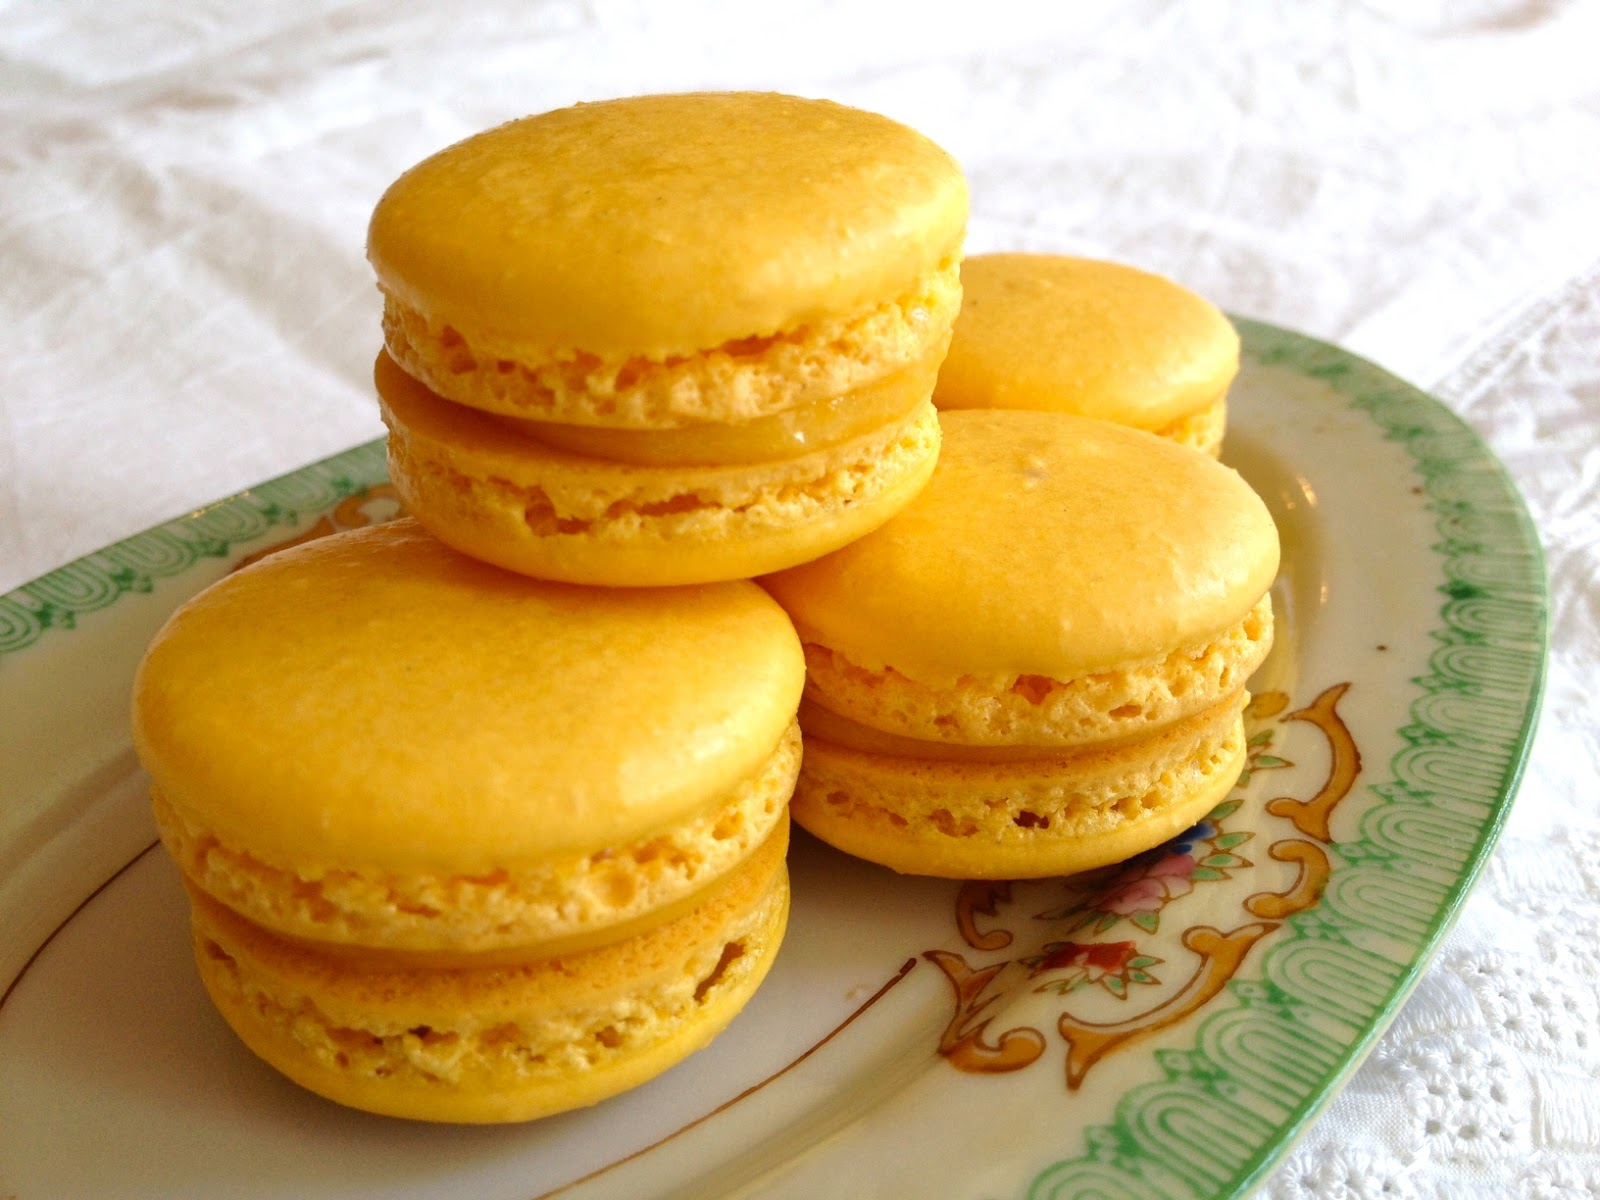 My Favorite Recipes: Passionfruit Macarons